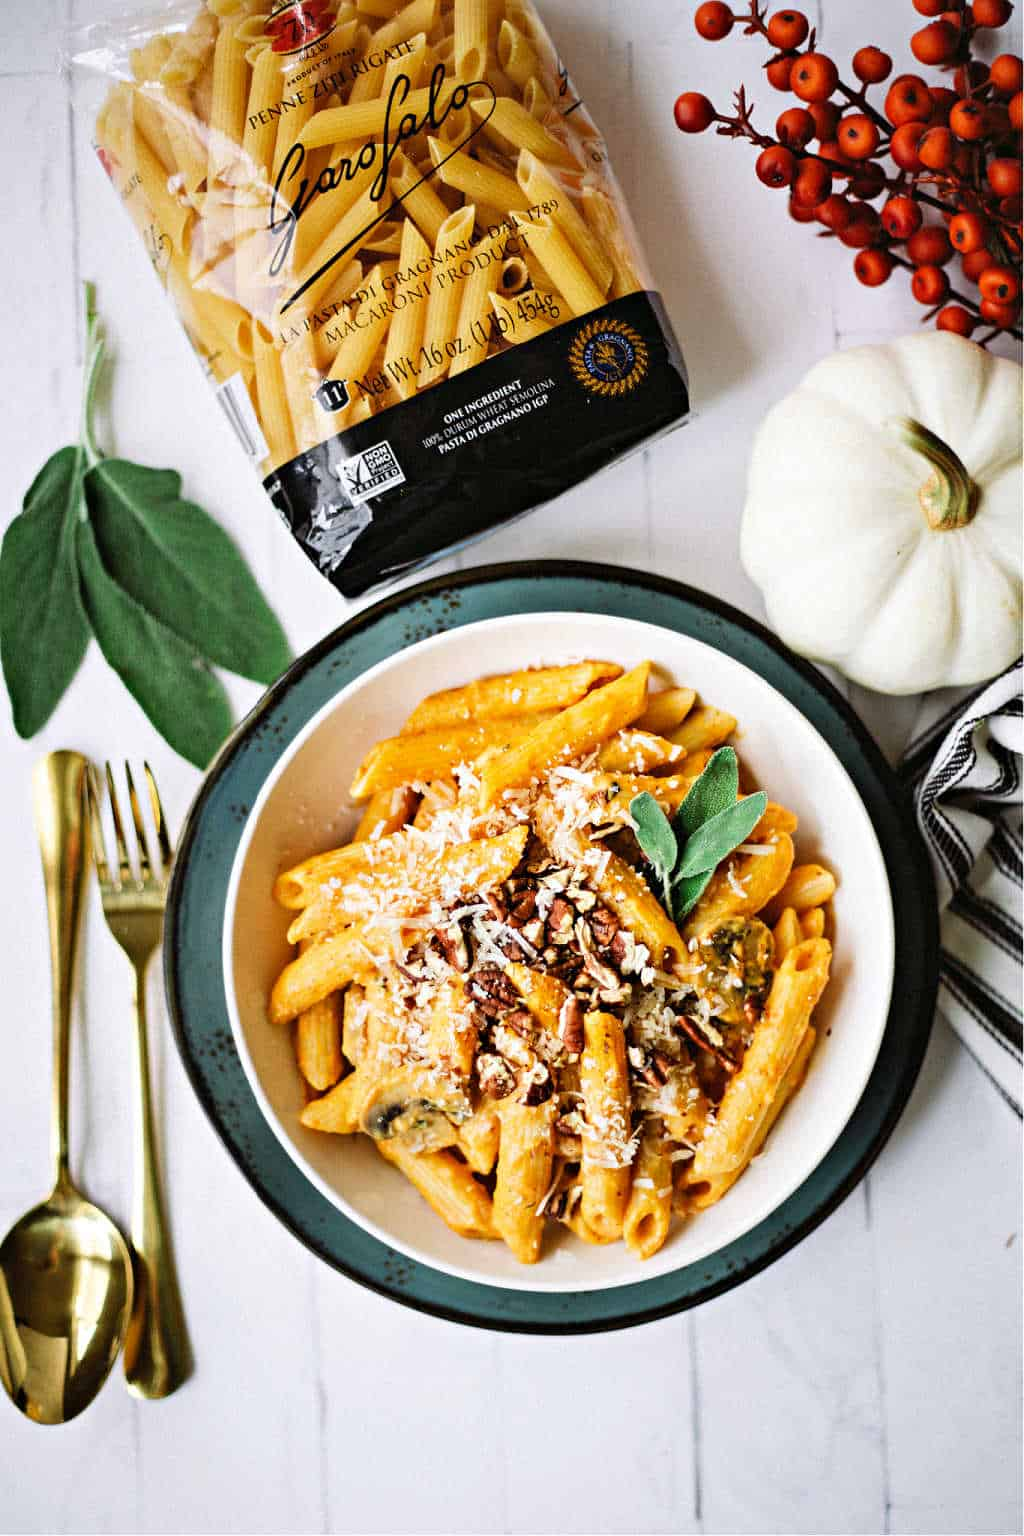 a bowl of penne pasta with pumpkin sauce and a package of Garafalo pasta